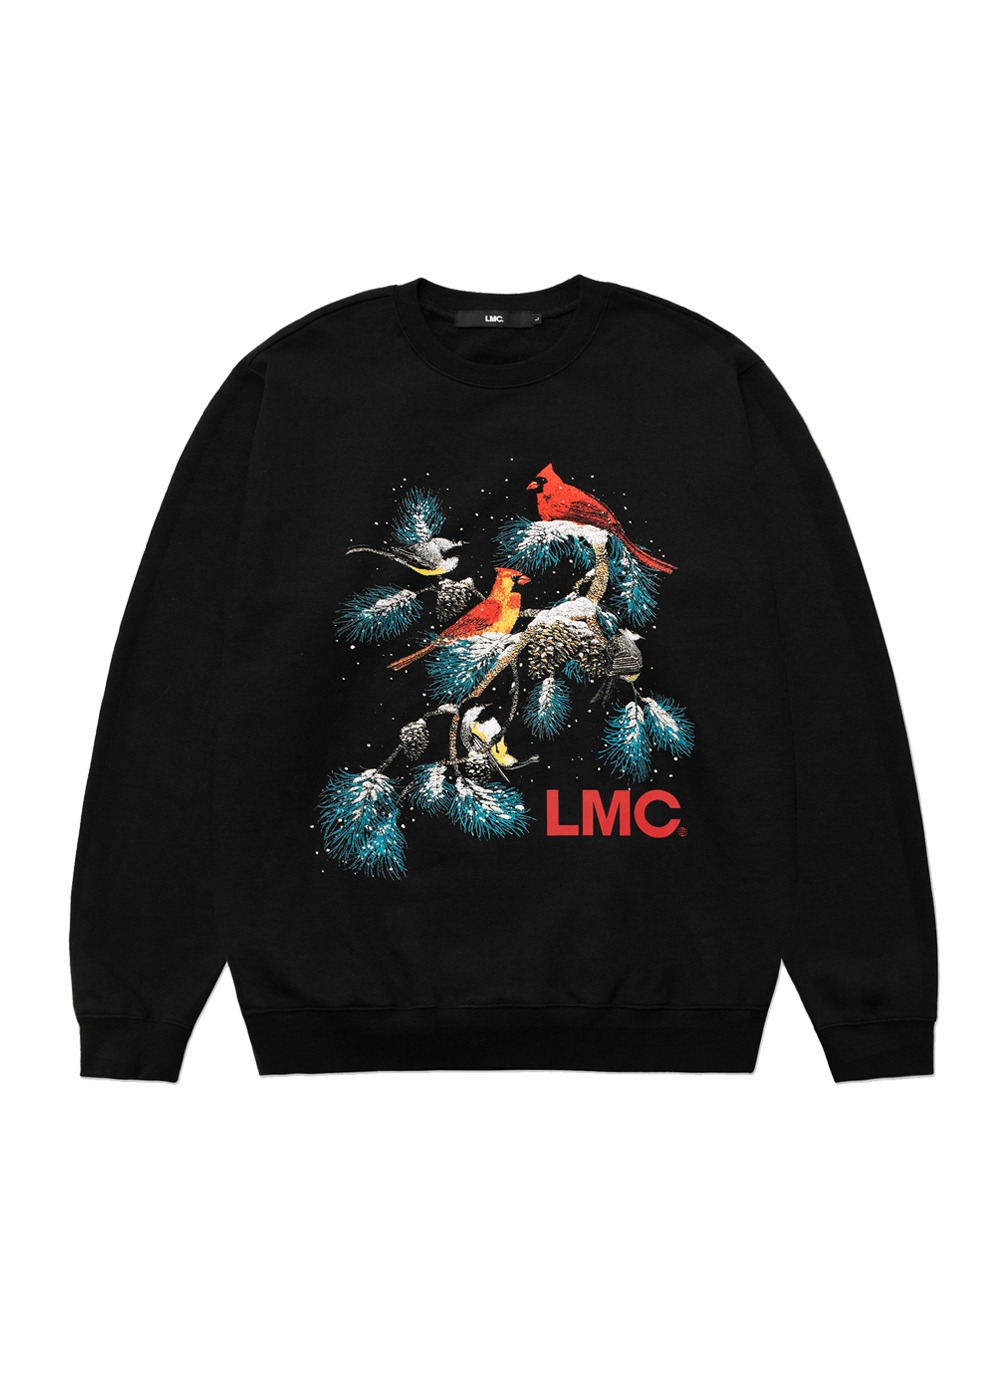 LMC CHRISTMAS OVERSIZED SWEATSHIRT black